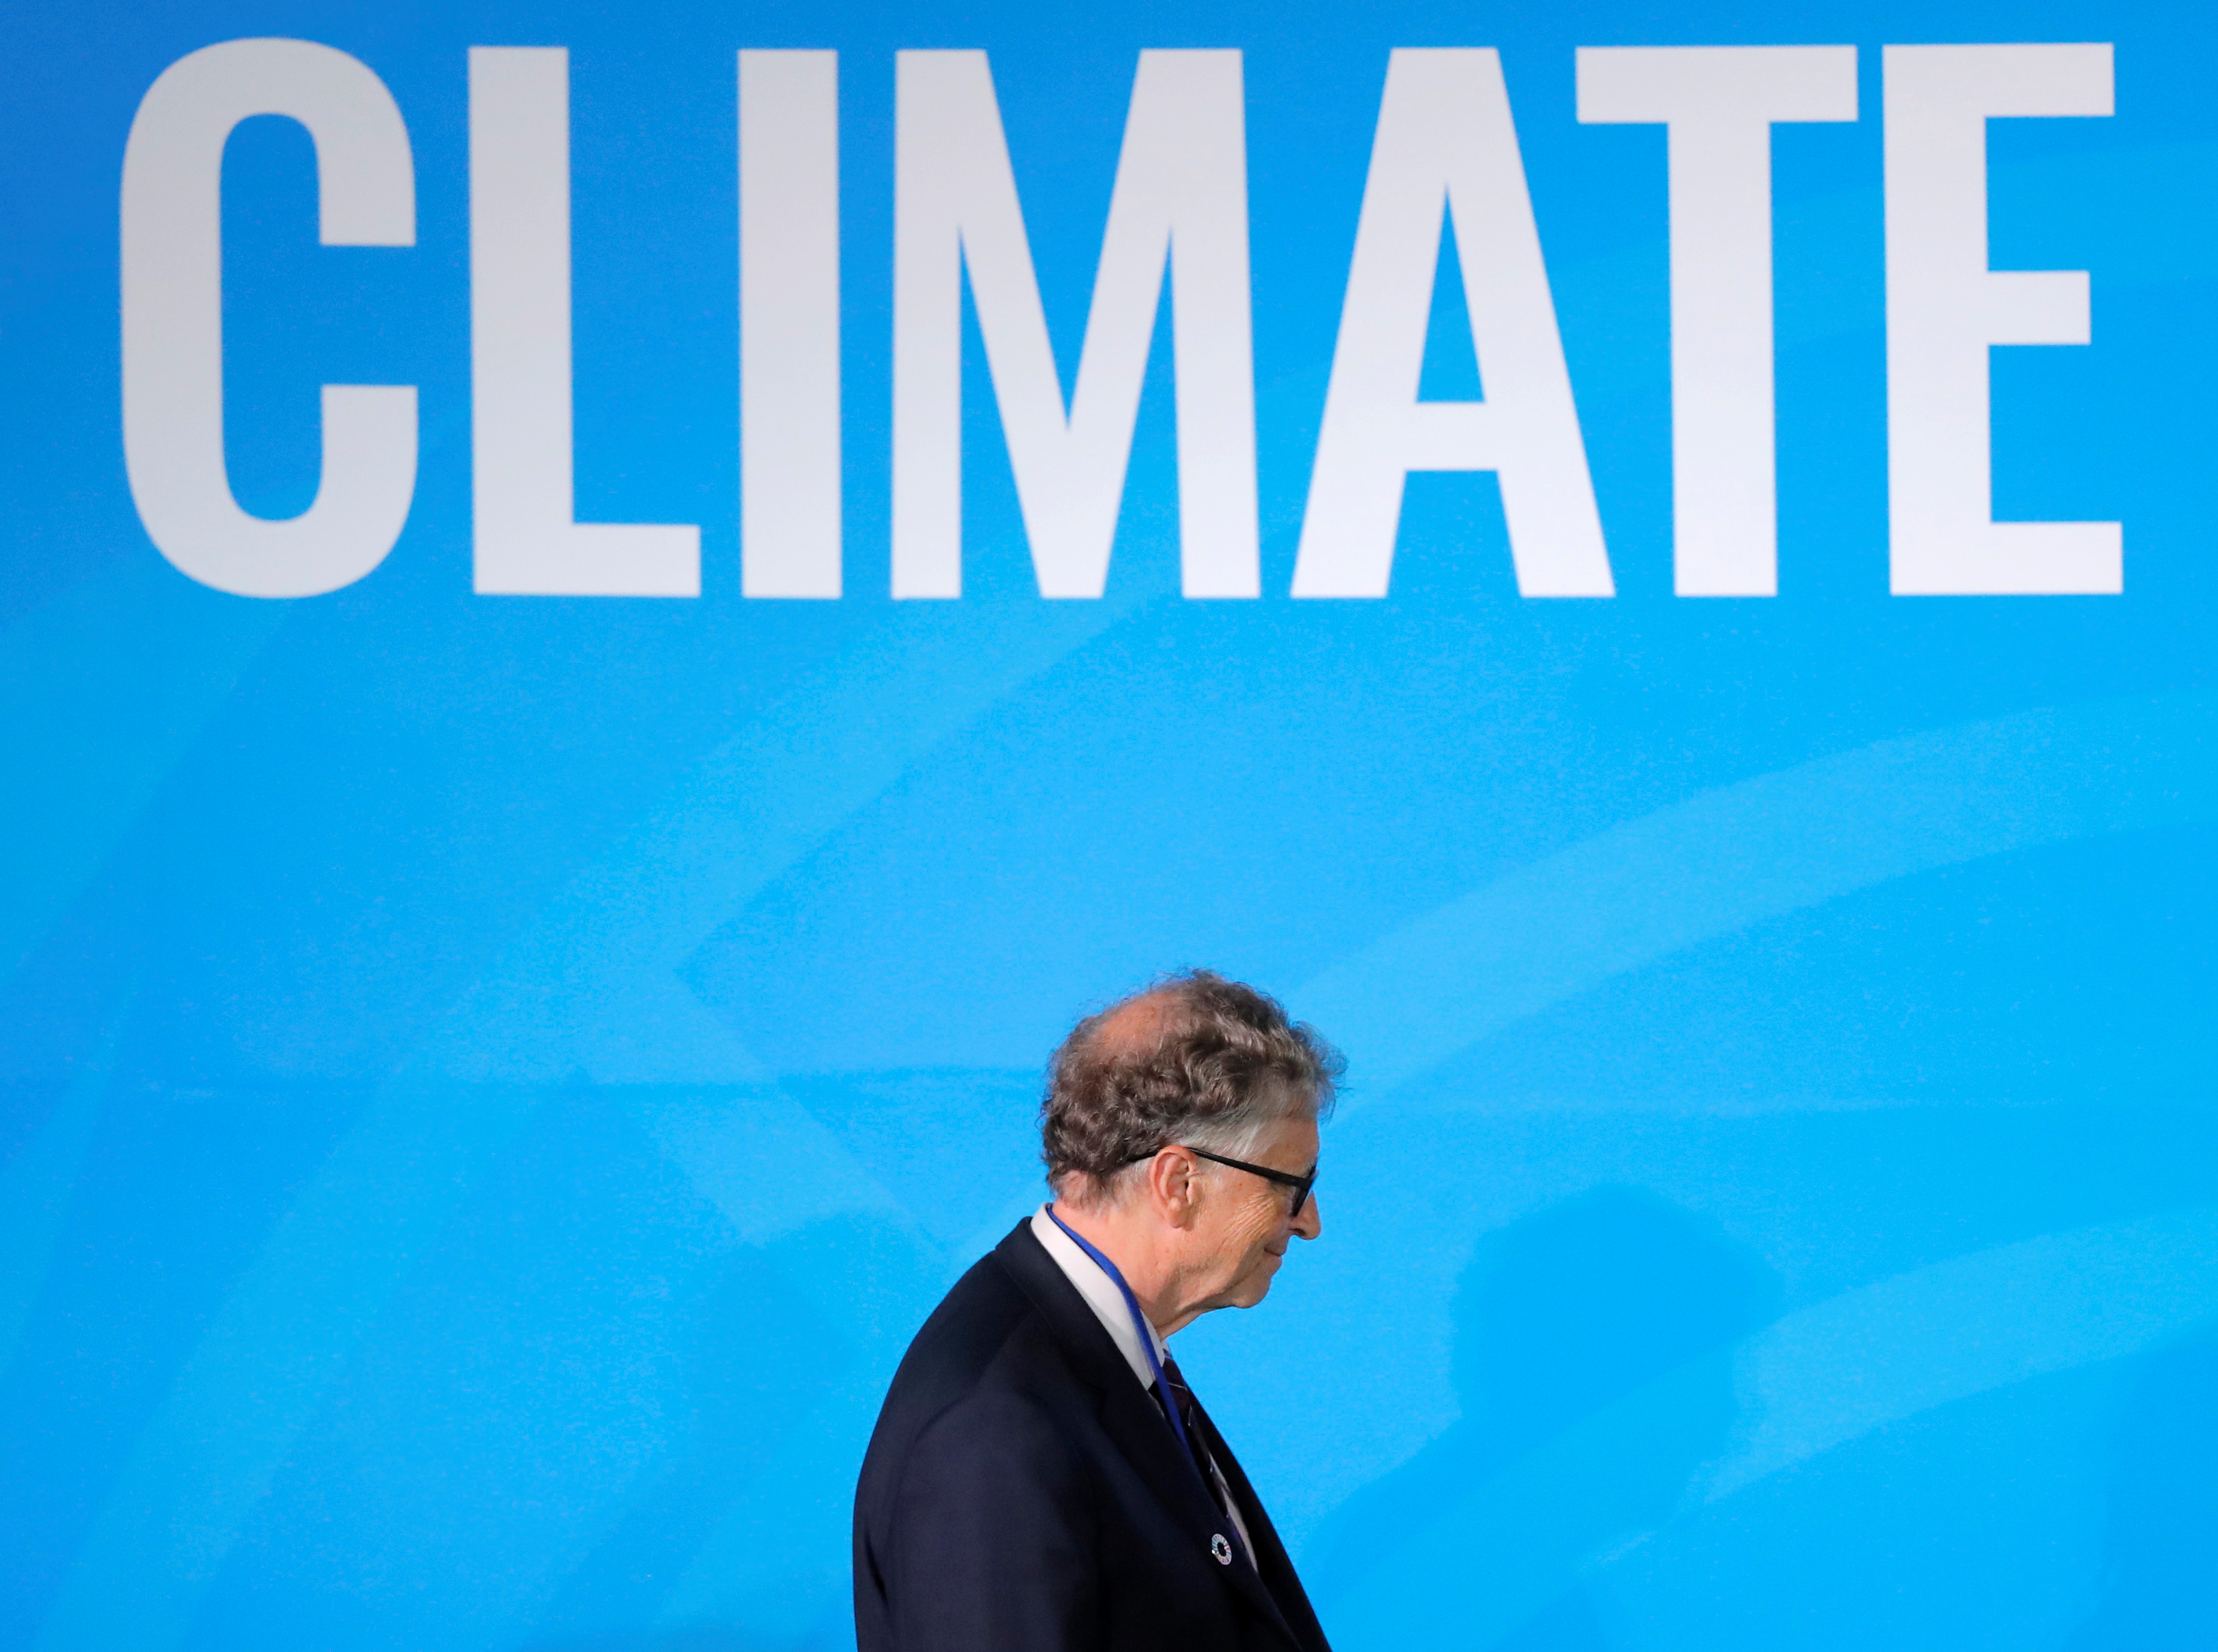 Bill Gates, Trustee and Co-Chair of the Global Commission on Adaptation, arrives to speak during the 2019 United Nations Climate Action Summit at U.N. headquarters in New York City, New York, U.S., September 23, 2019. REUTERS/Lucas Jackson